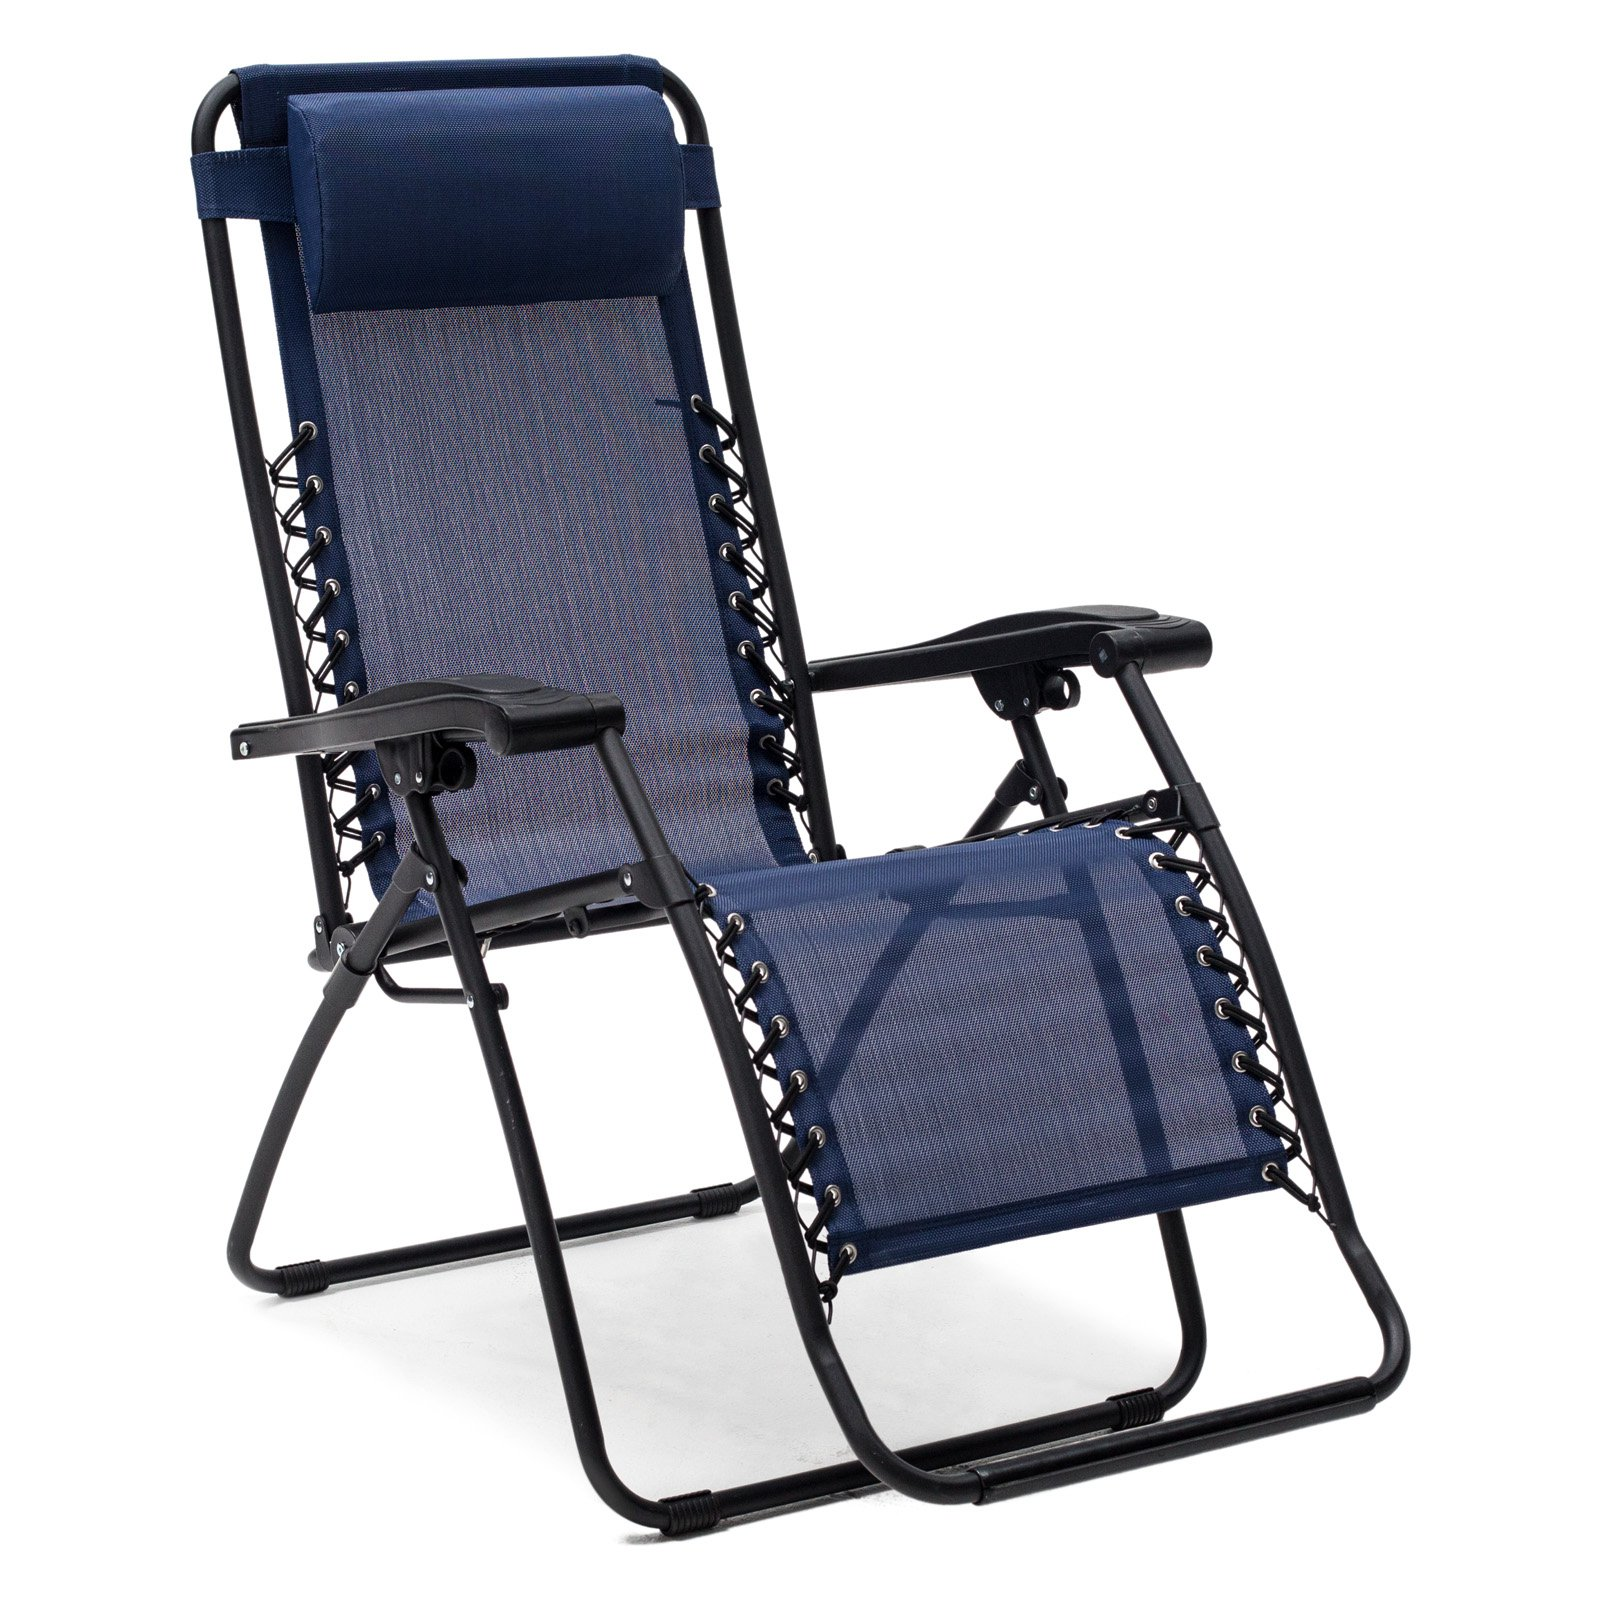 Caravan Sports Reclining Zero Gravity Chair  sc 1 st  Walmart & Caravan Sports Reclining Zero Gravity Chair - Walmart.com